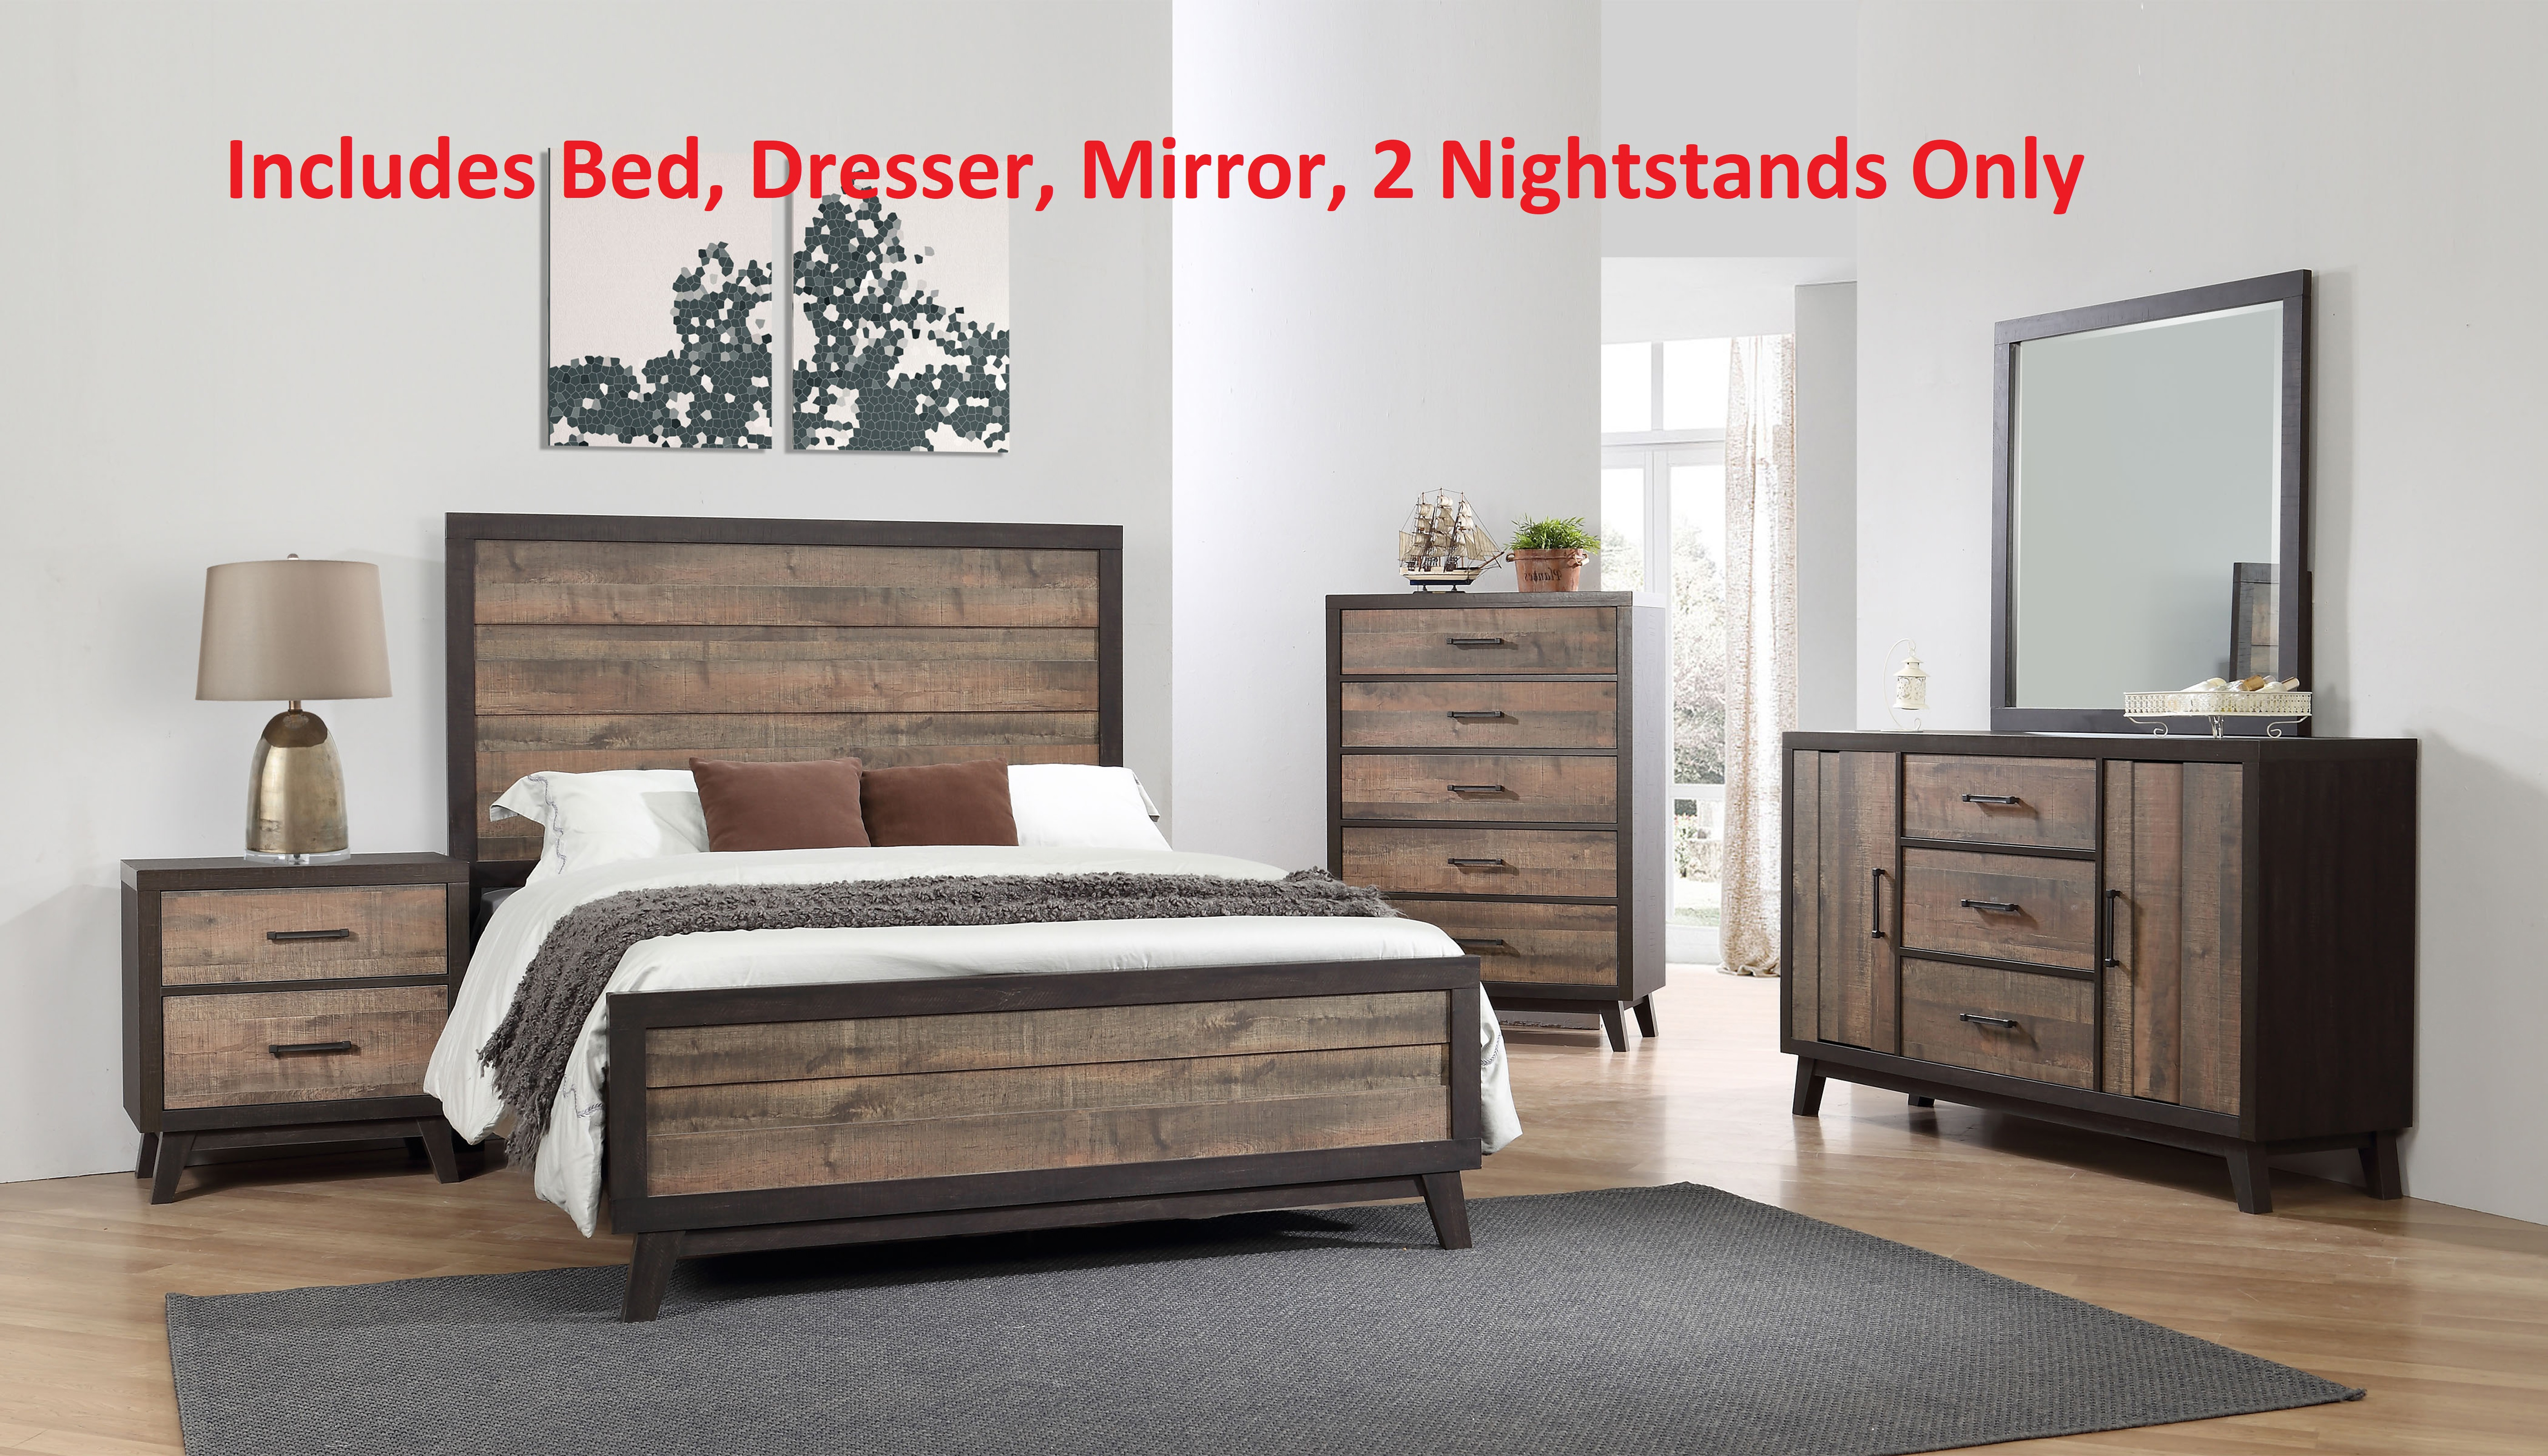 Calista 5 Piece King Size Rustic Mahogany With Solid Wood Dark Ebony Frame  Panel Bedroom Set (Bed, Dresser U0026 Mirror, 2 Nightstands)   Walmart.com